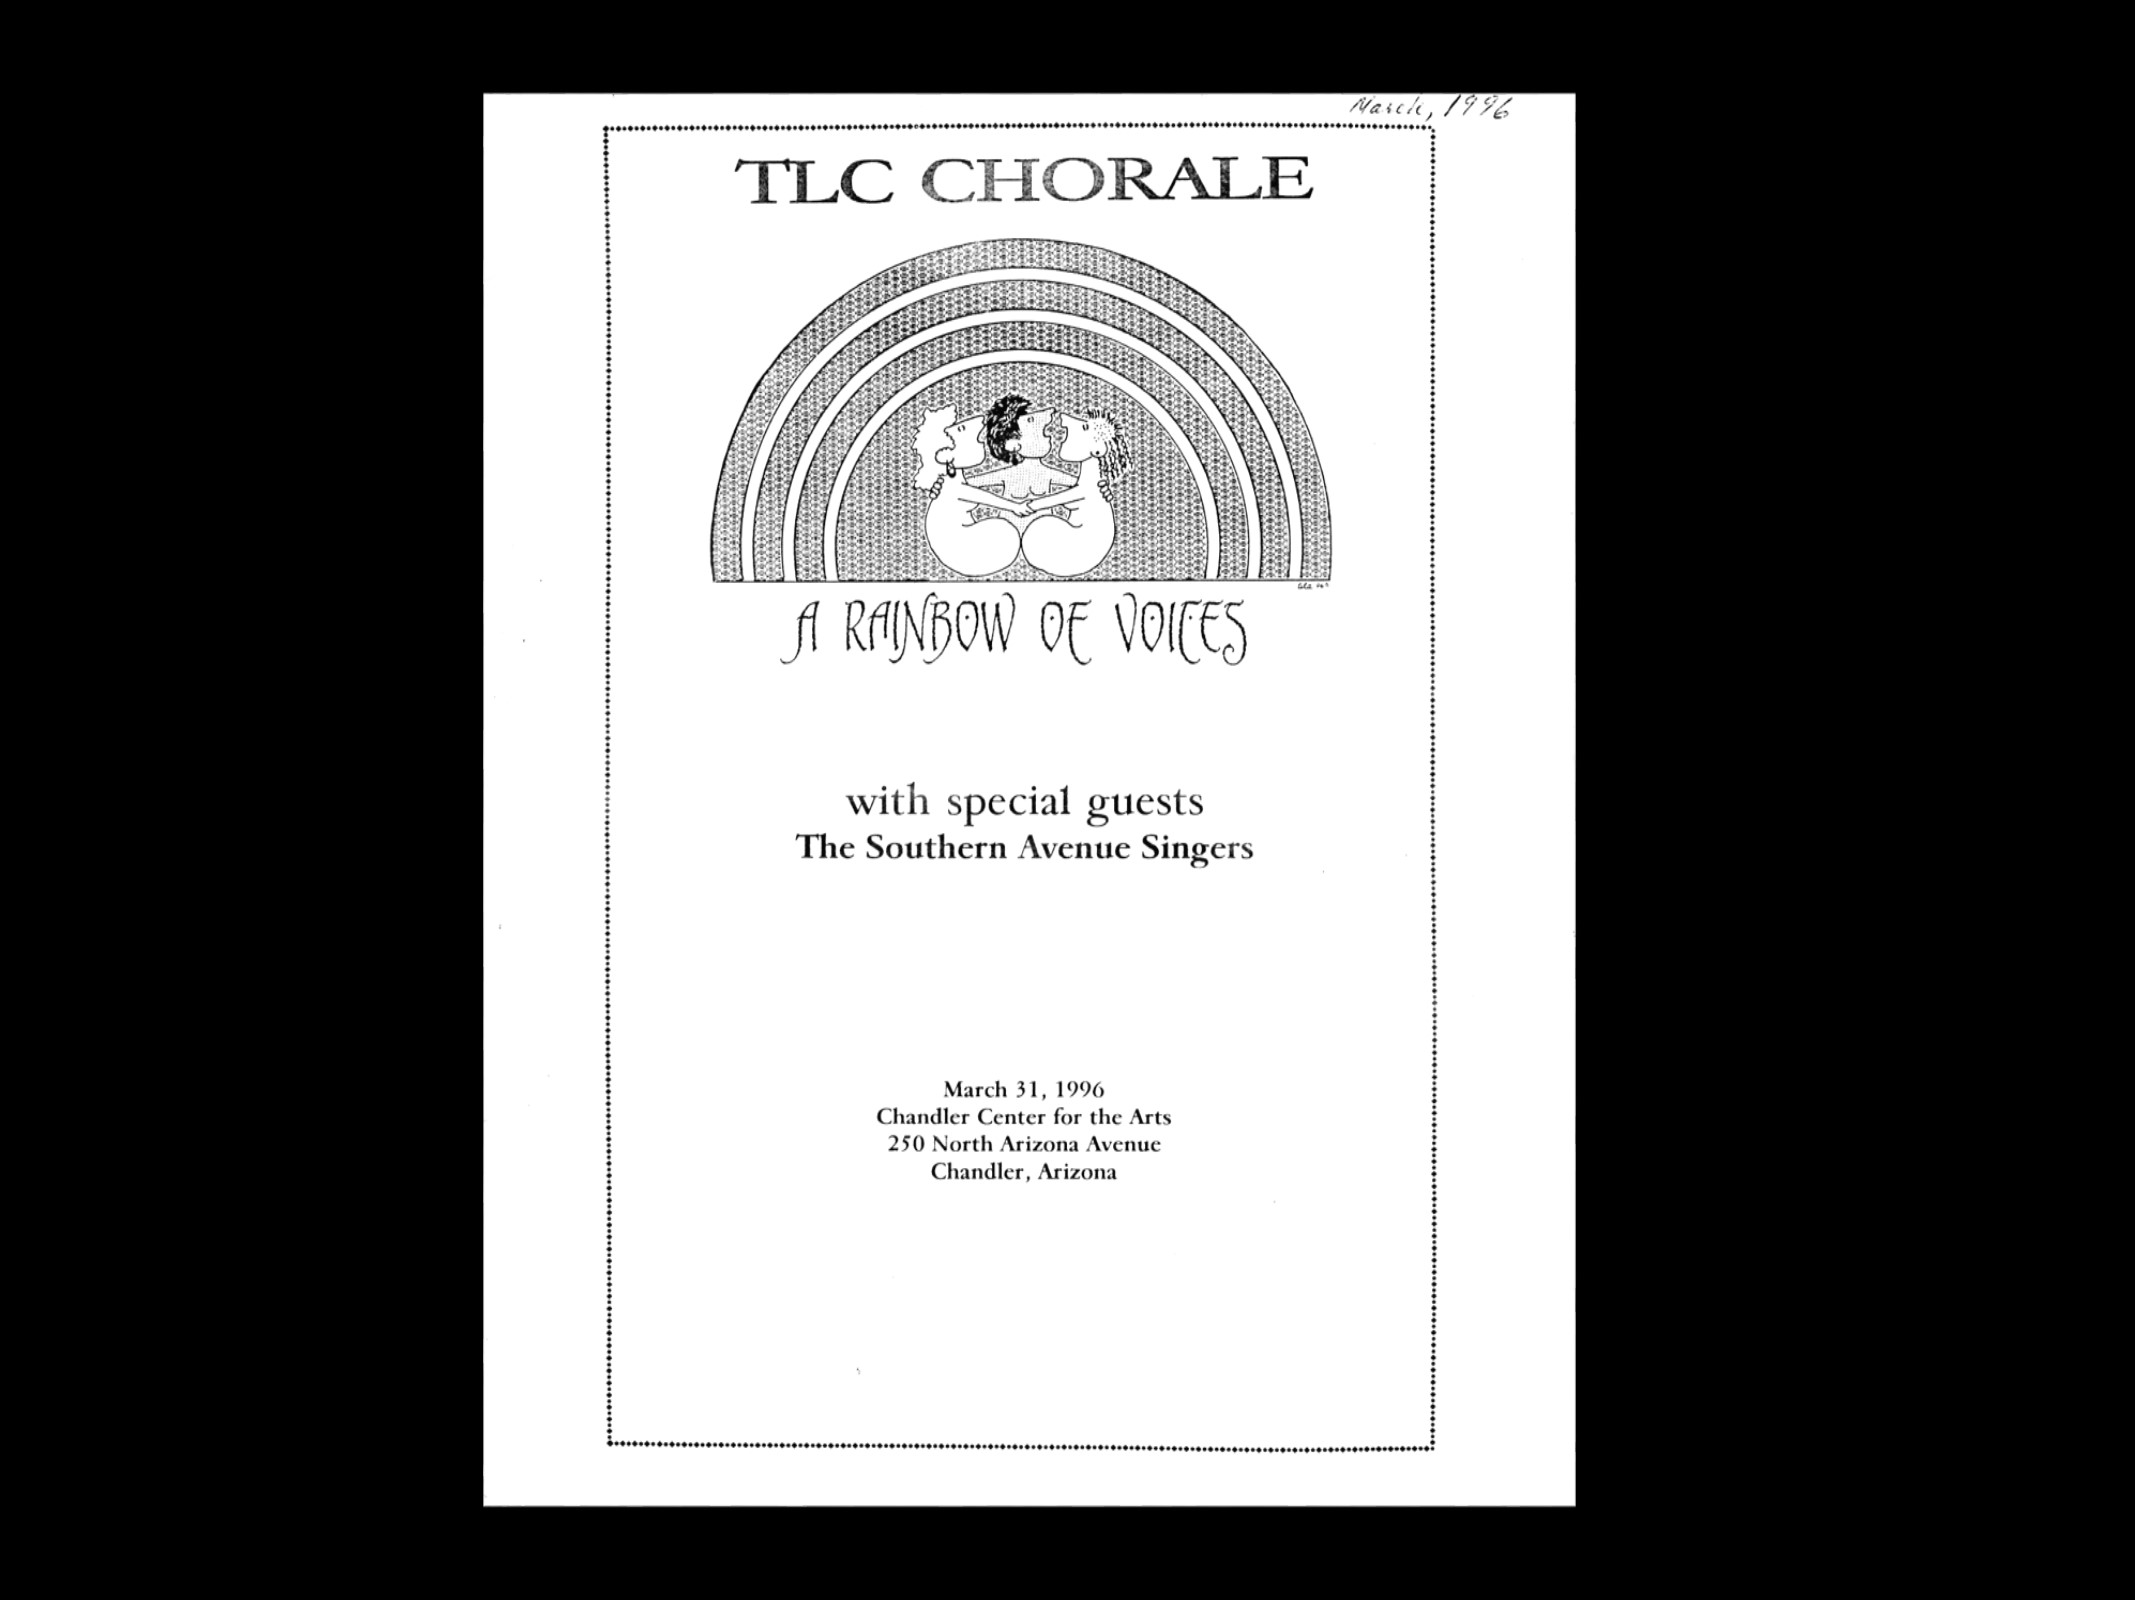 TLC's Concert Program from March 1996: A Rainbow of Voices.